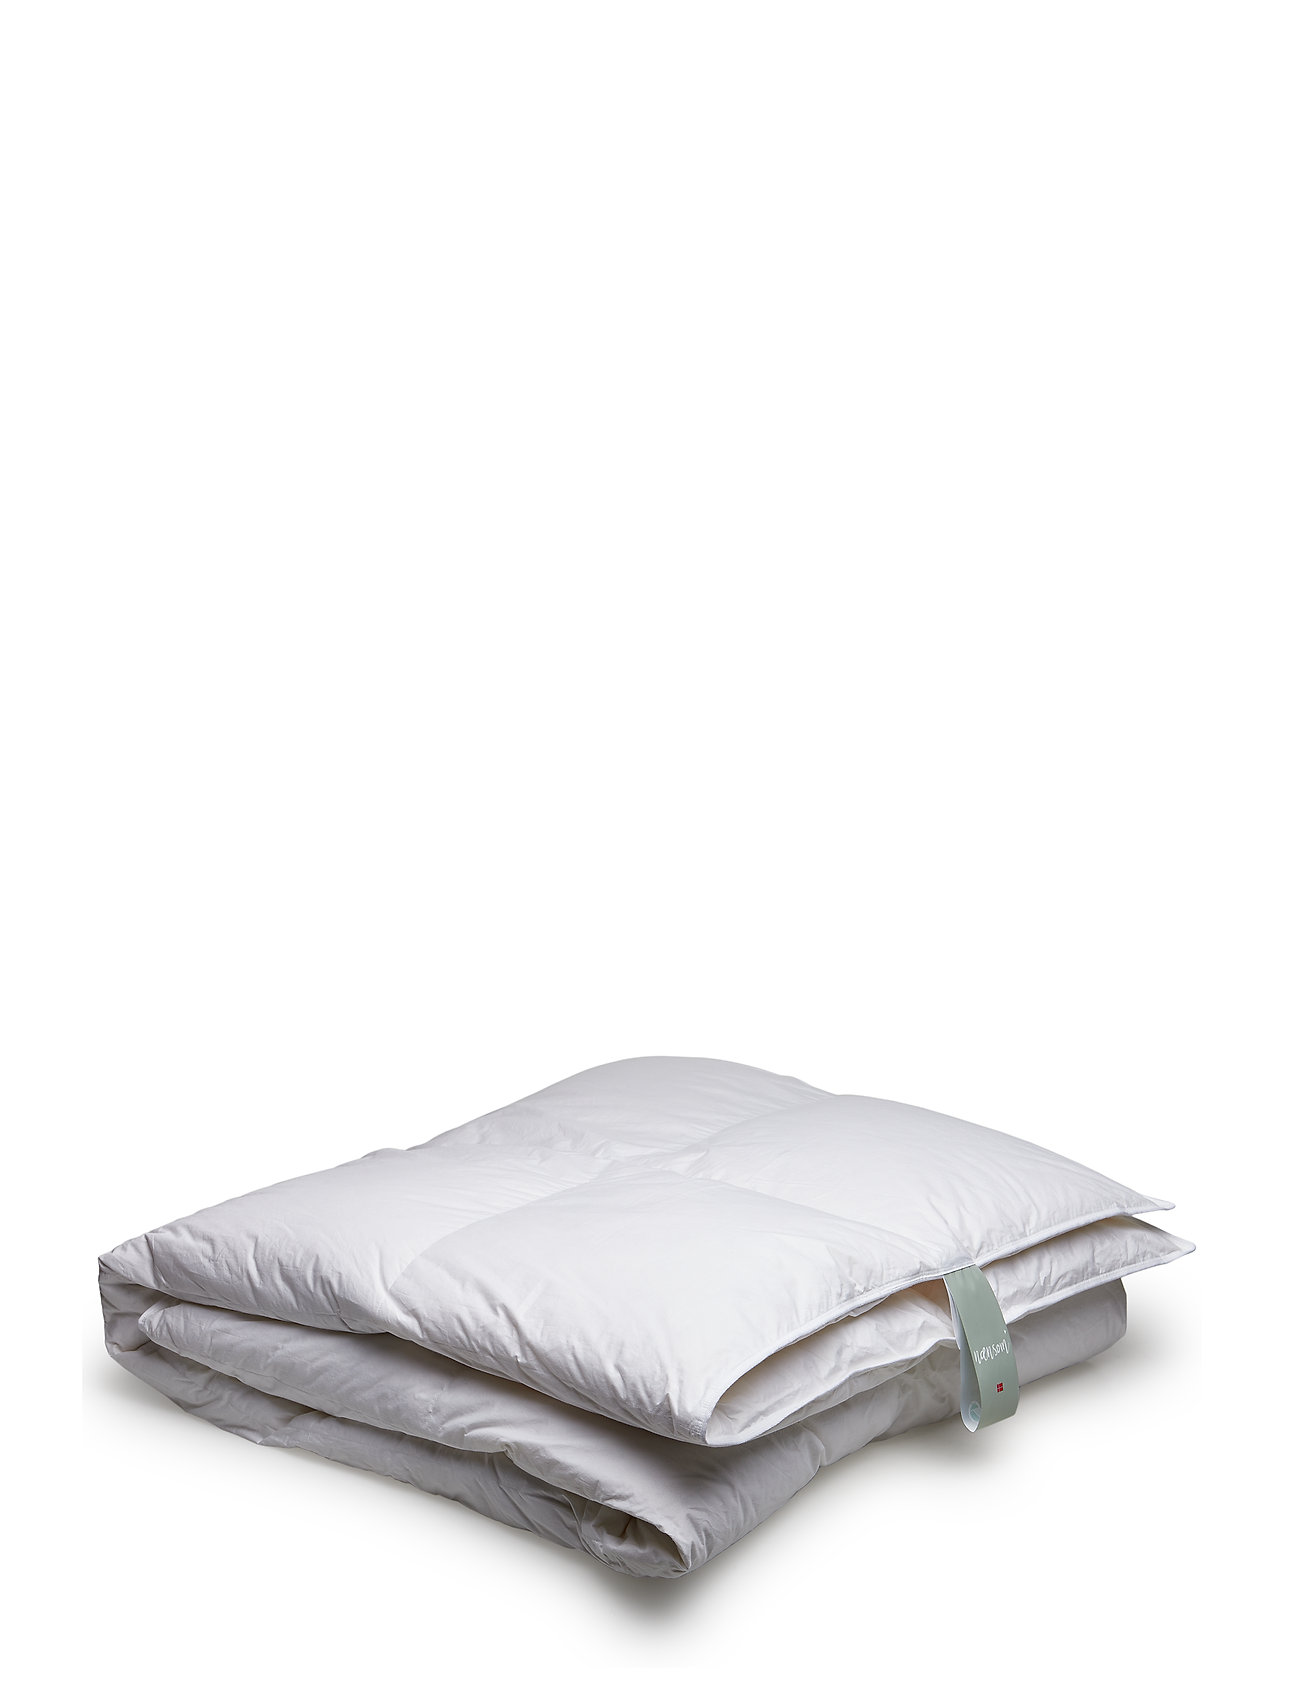 Quilts of Denmark Nænsom Warm Down Duvet - WHITE